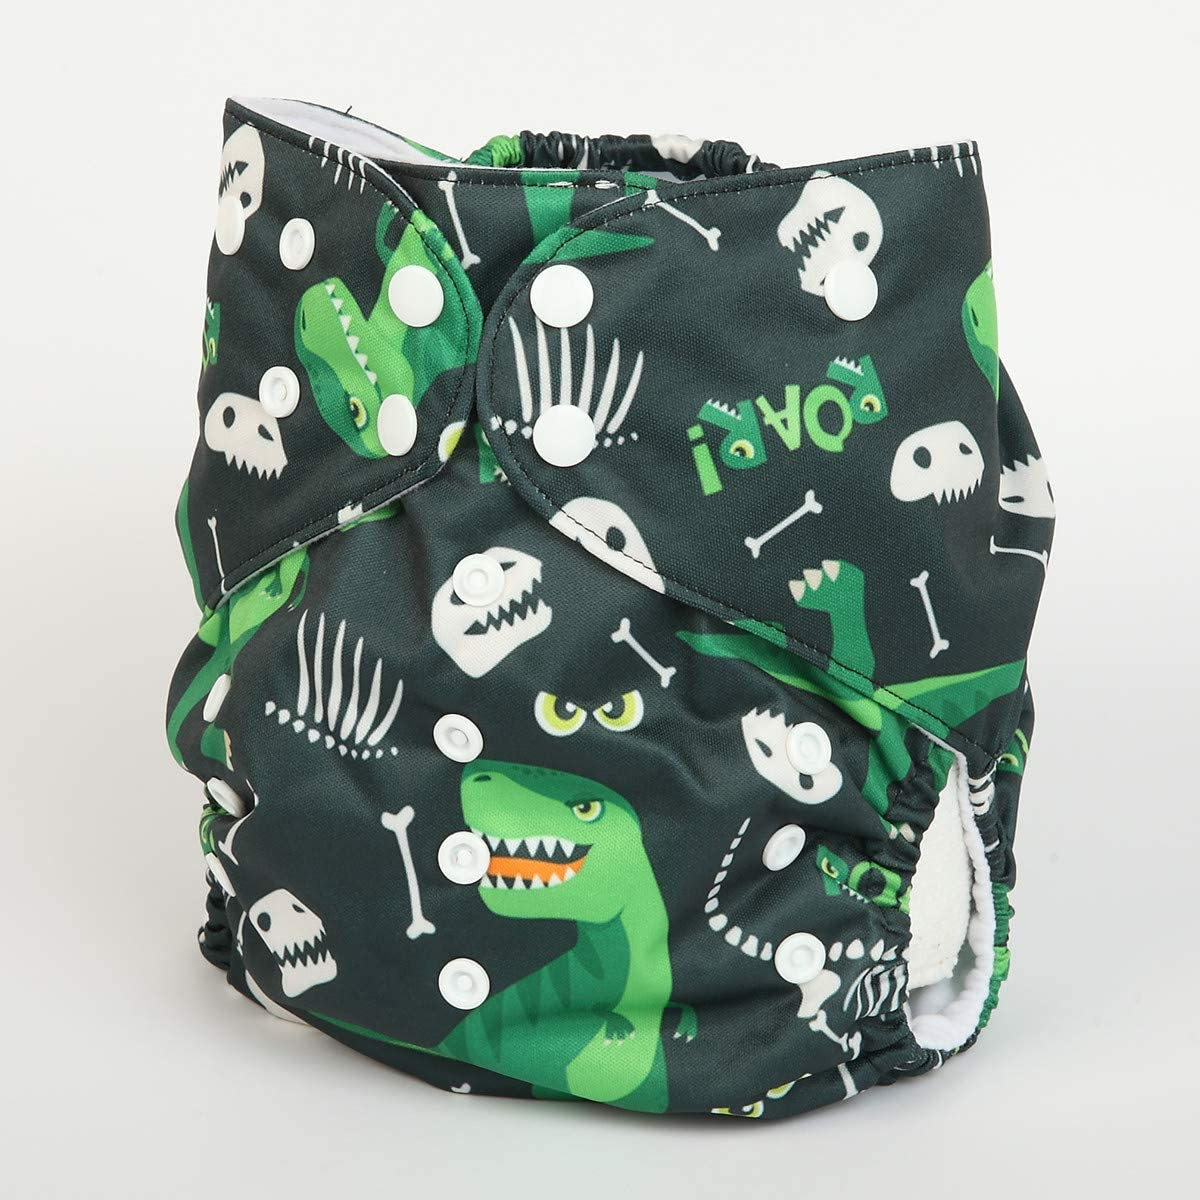 Sigzagor 2 to 7 Years Old Junior Big Cloth Diaper,Nappy,Pocket Reusable Washable,Baby Kids Toddler Cats